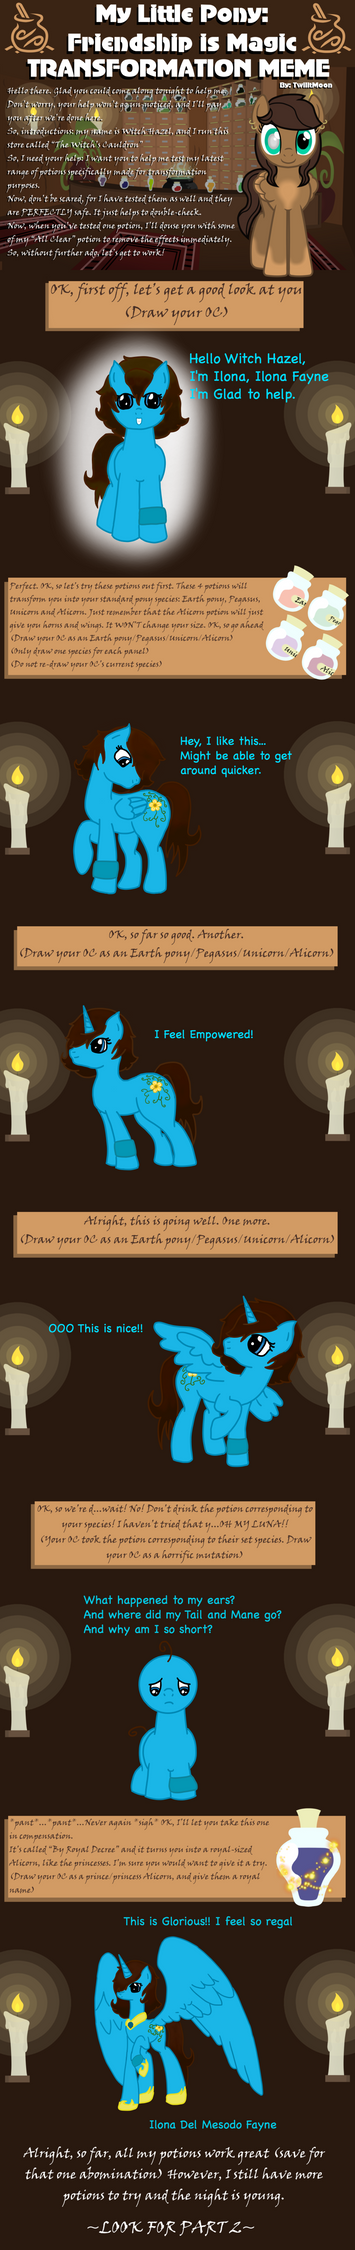 Transformation meme...again by EmpatheticMortalAnge